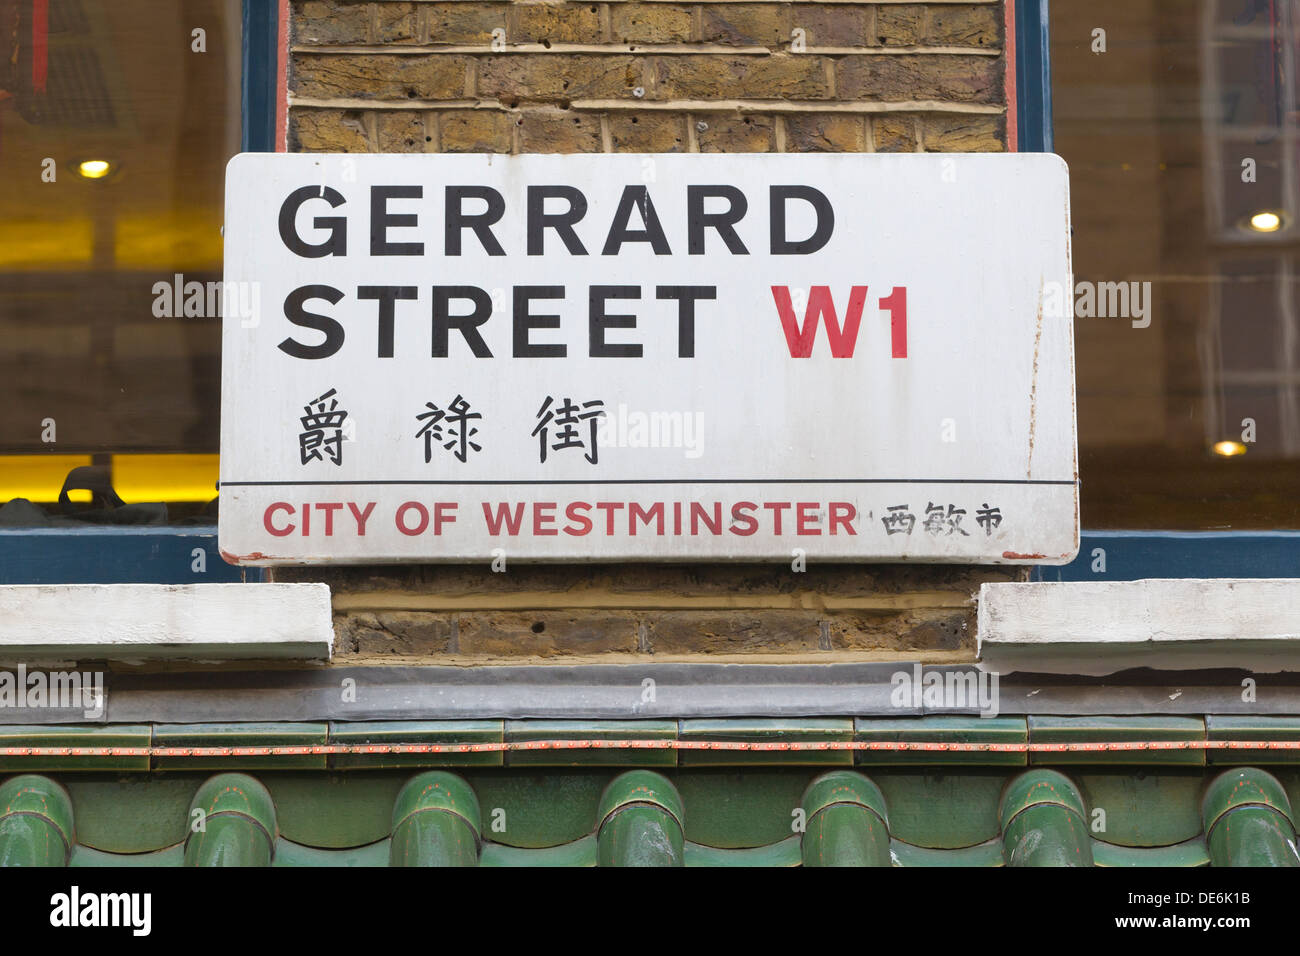 Gerrard Street, China Town, City of Westminster, London, England, United Kingdom - Stock Image